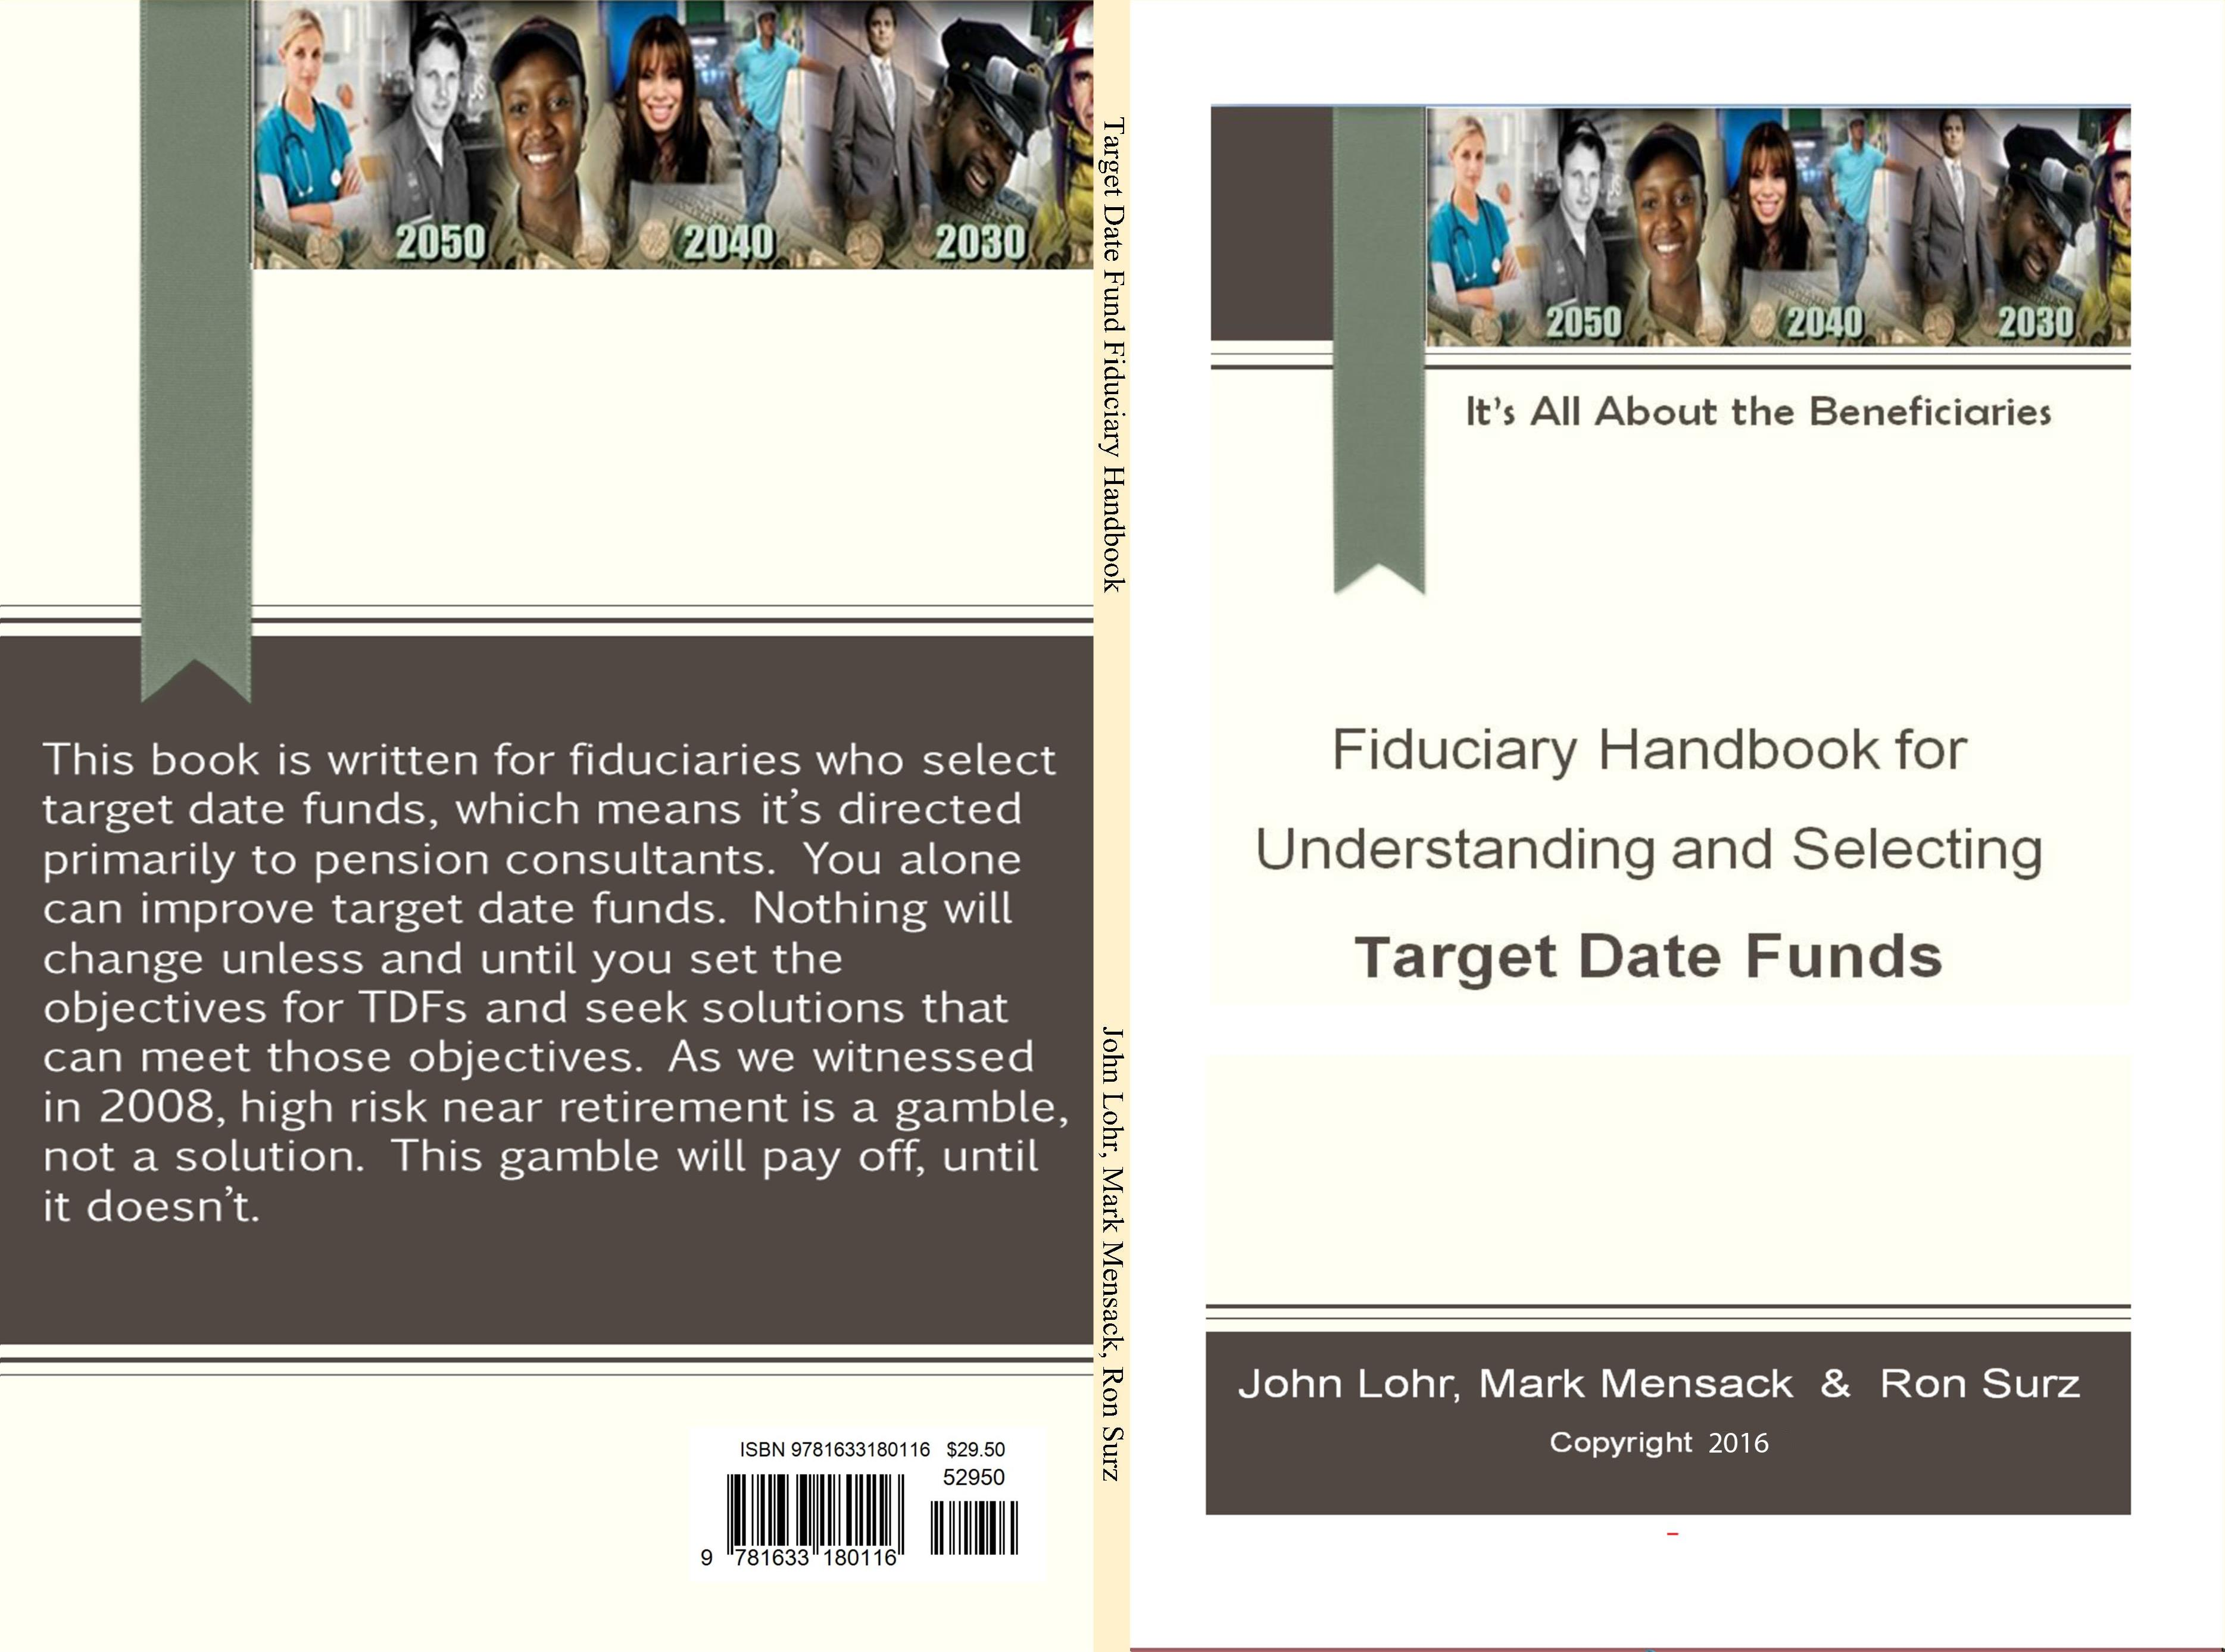 Fiduciary Handbook for Understanding and Selecting Target Date Funds: It